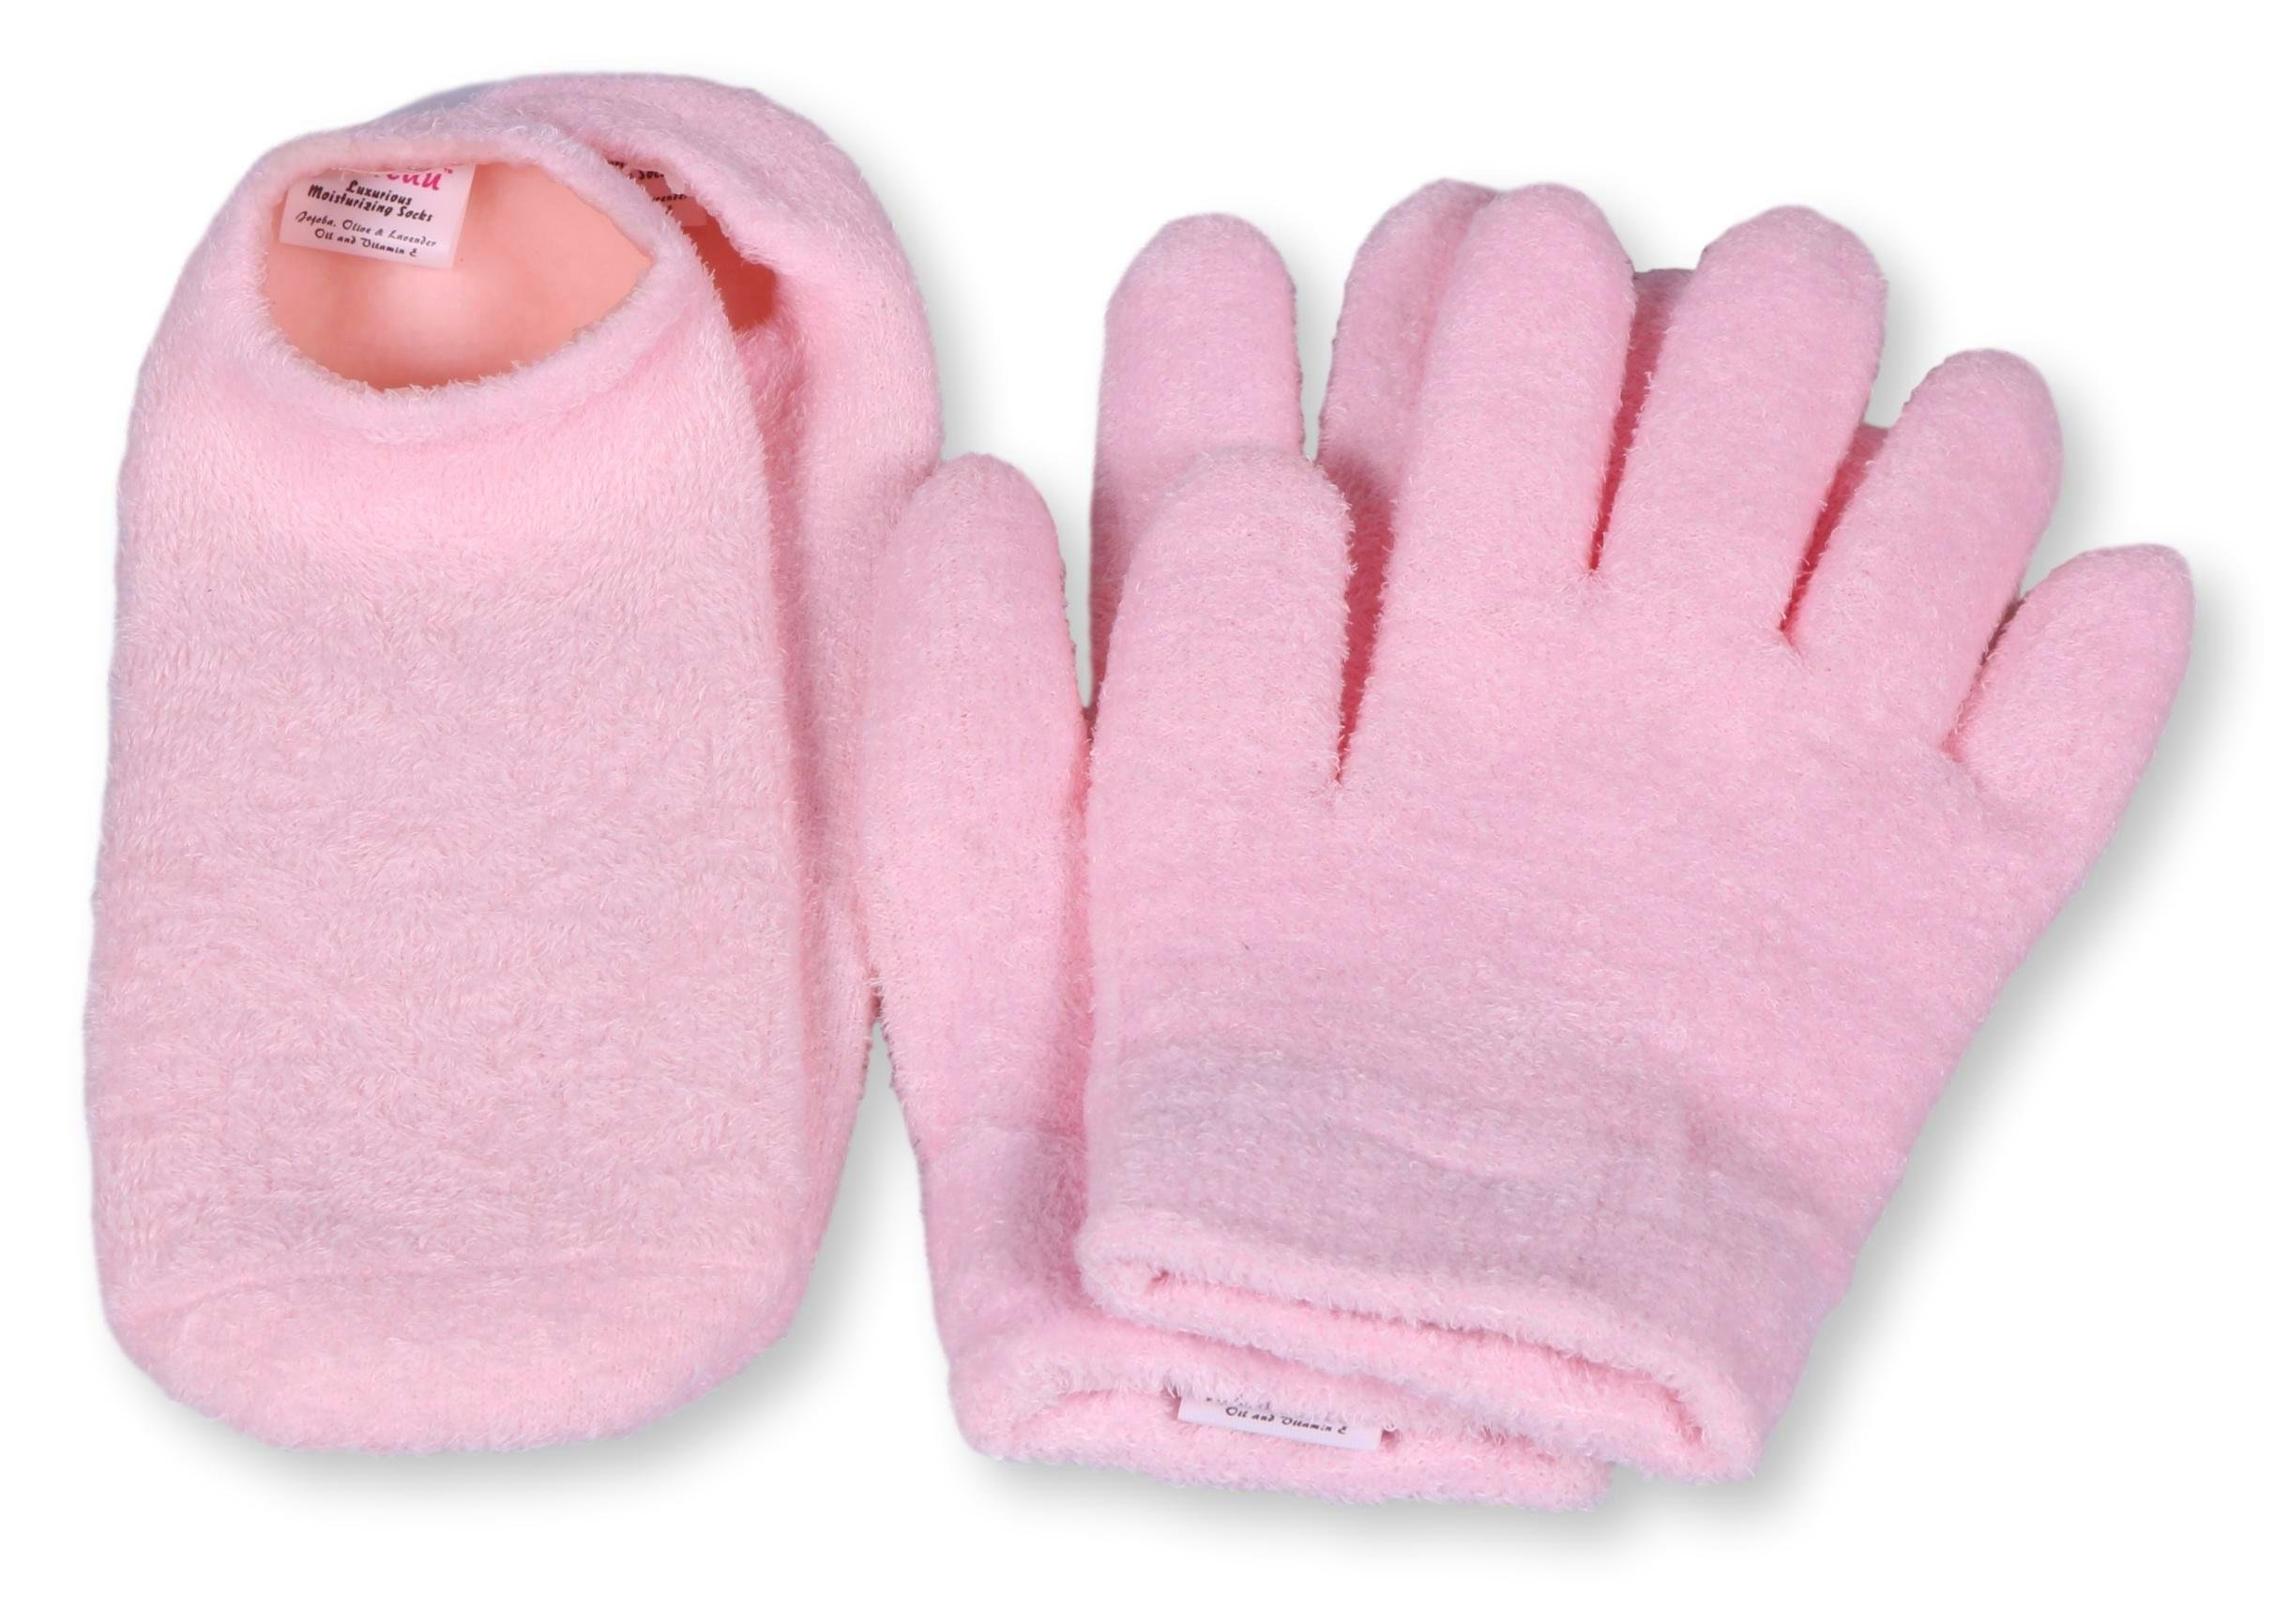 Luxurious Moisturizing Gloves Socks Pack - For Men and Women - Soft Cotton with Thermoplastic Gel Lining - Work on Cracked Feet and Hands - Infused with Botanical Oils - One Pair of Each